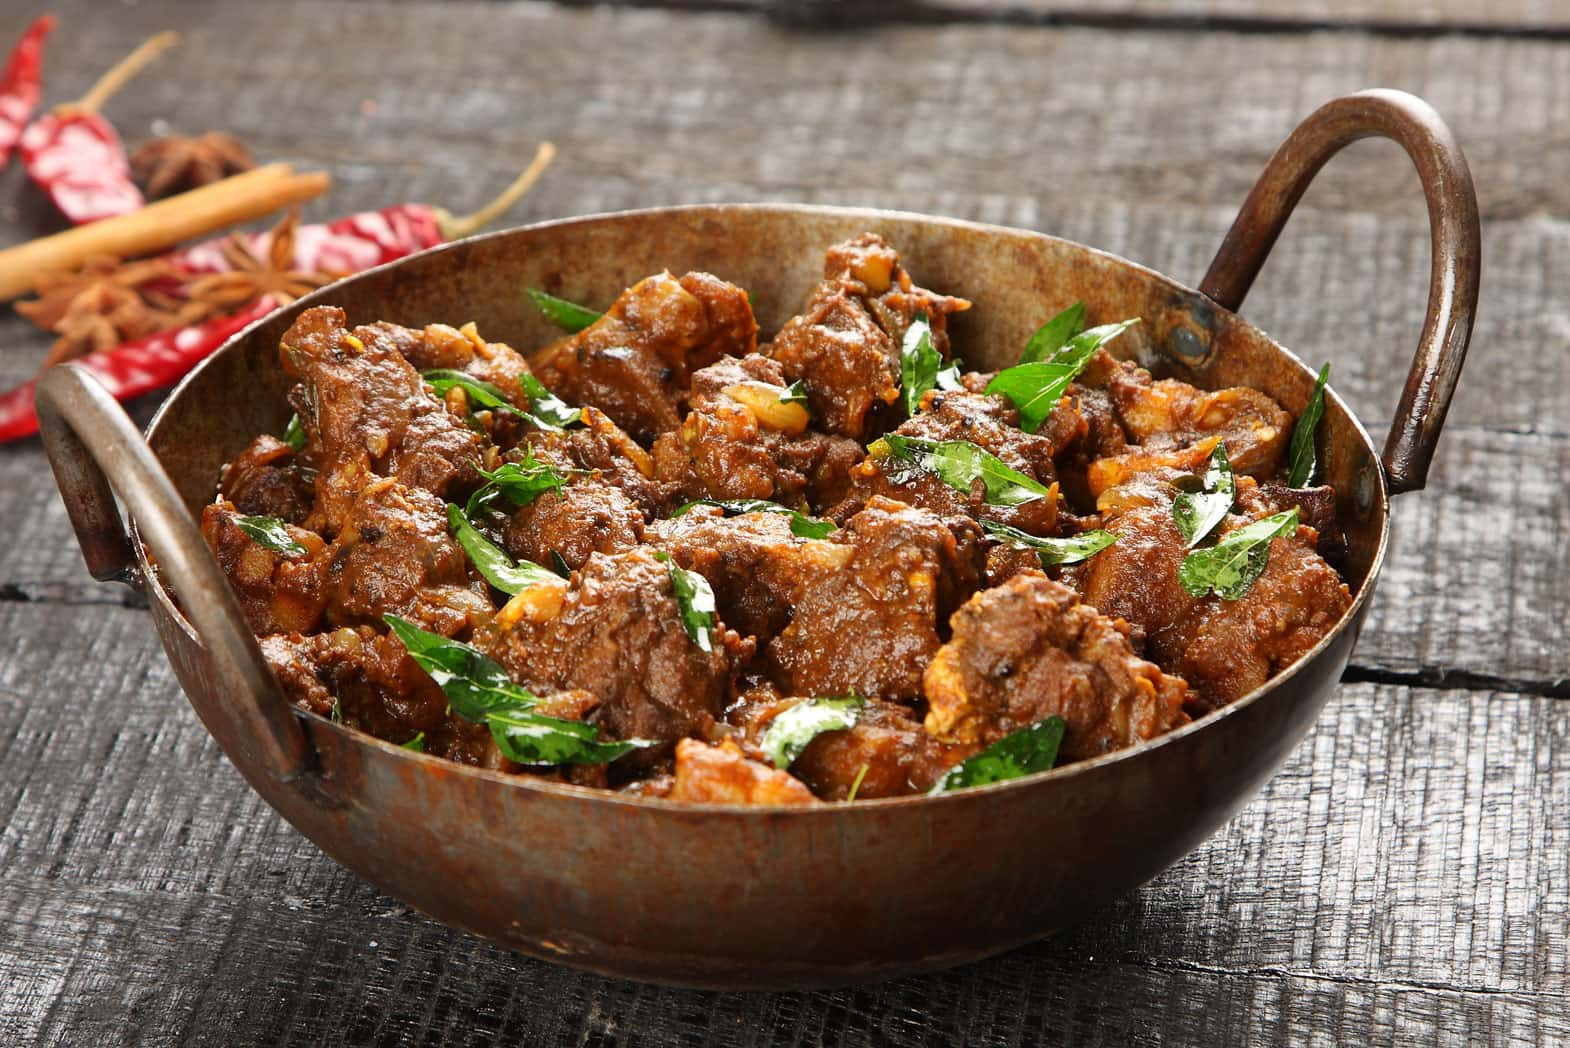 What are the best spices to use in a spicy lamb curry?